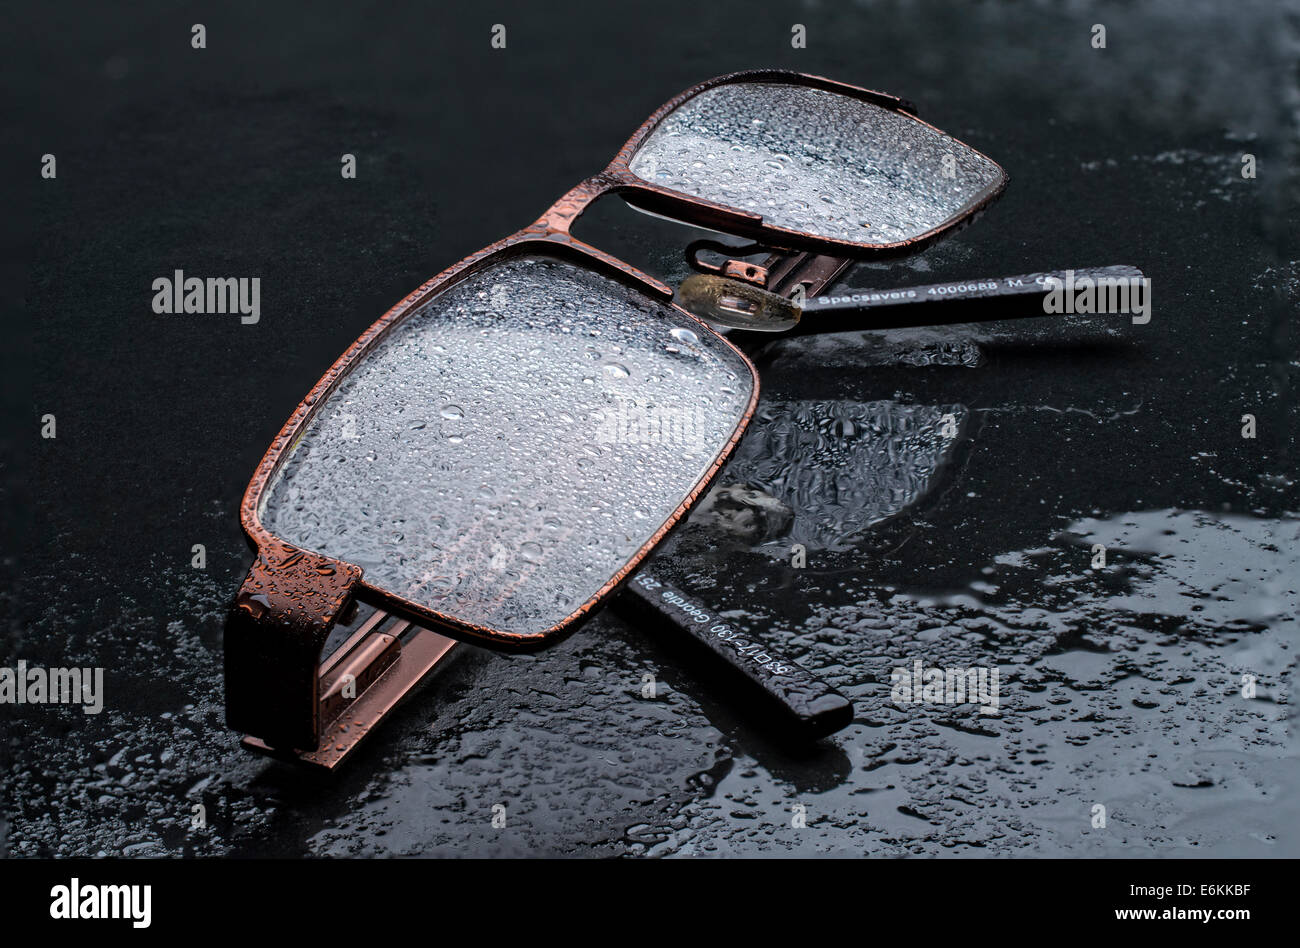 A pair of spectacles spattered with raindrops - Stock Image